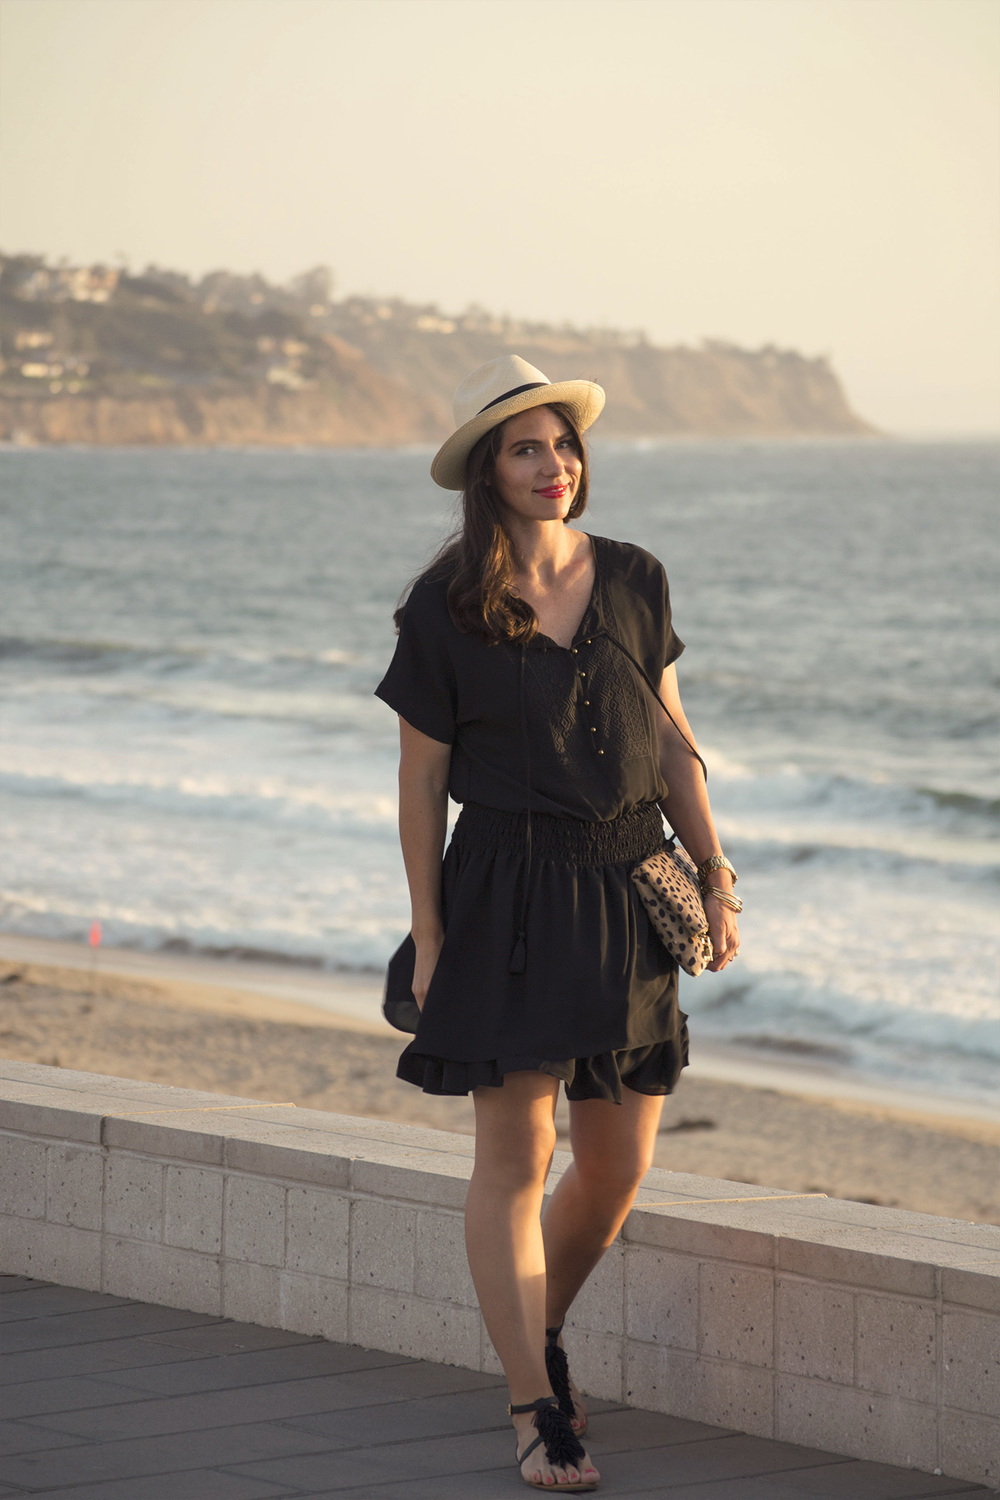 Black Dress Beach 3.jpg